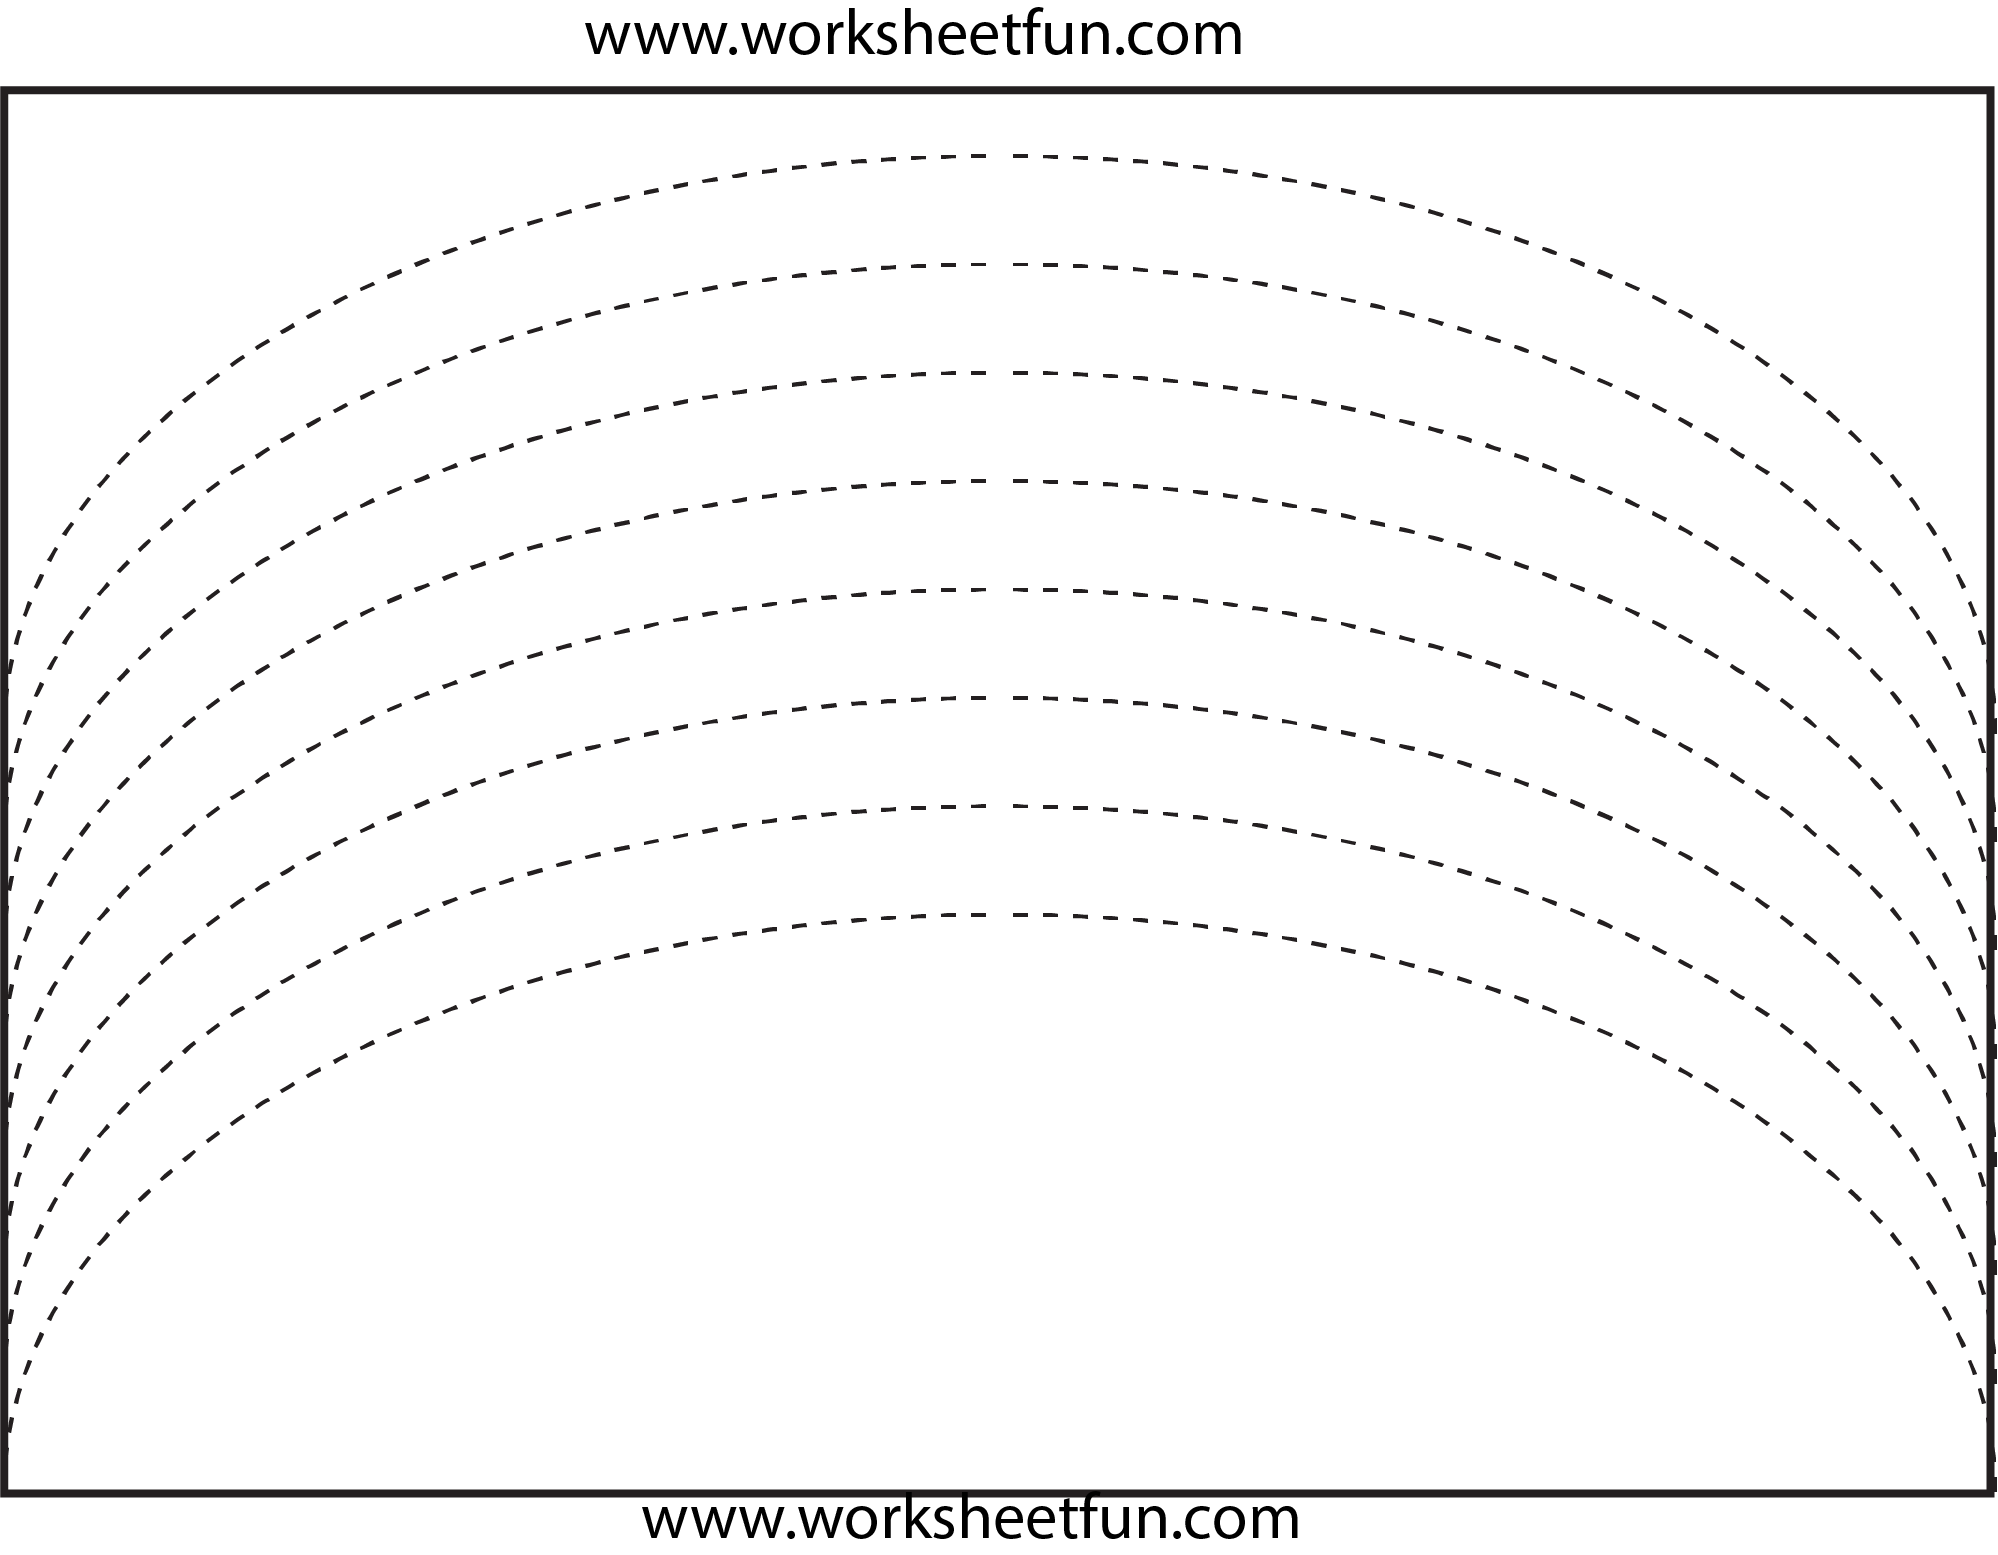 Curved Line Tracing 4 Worksheets Free Printable